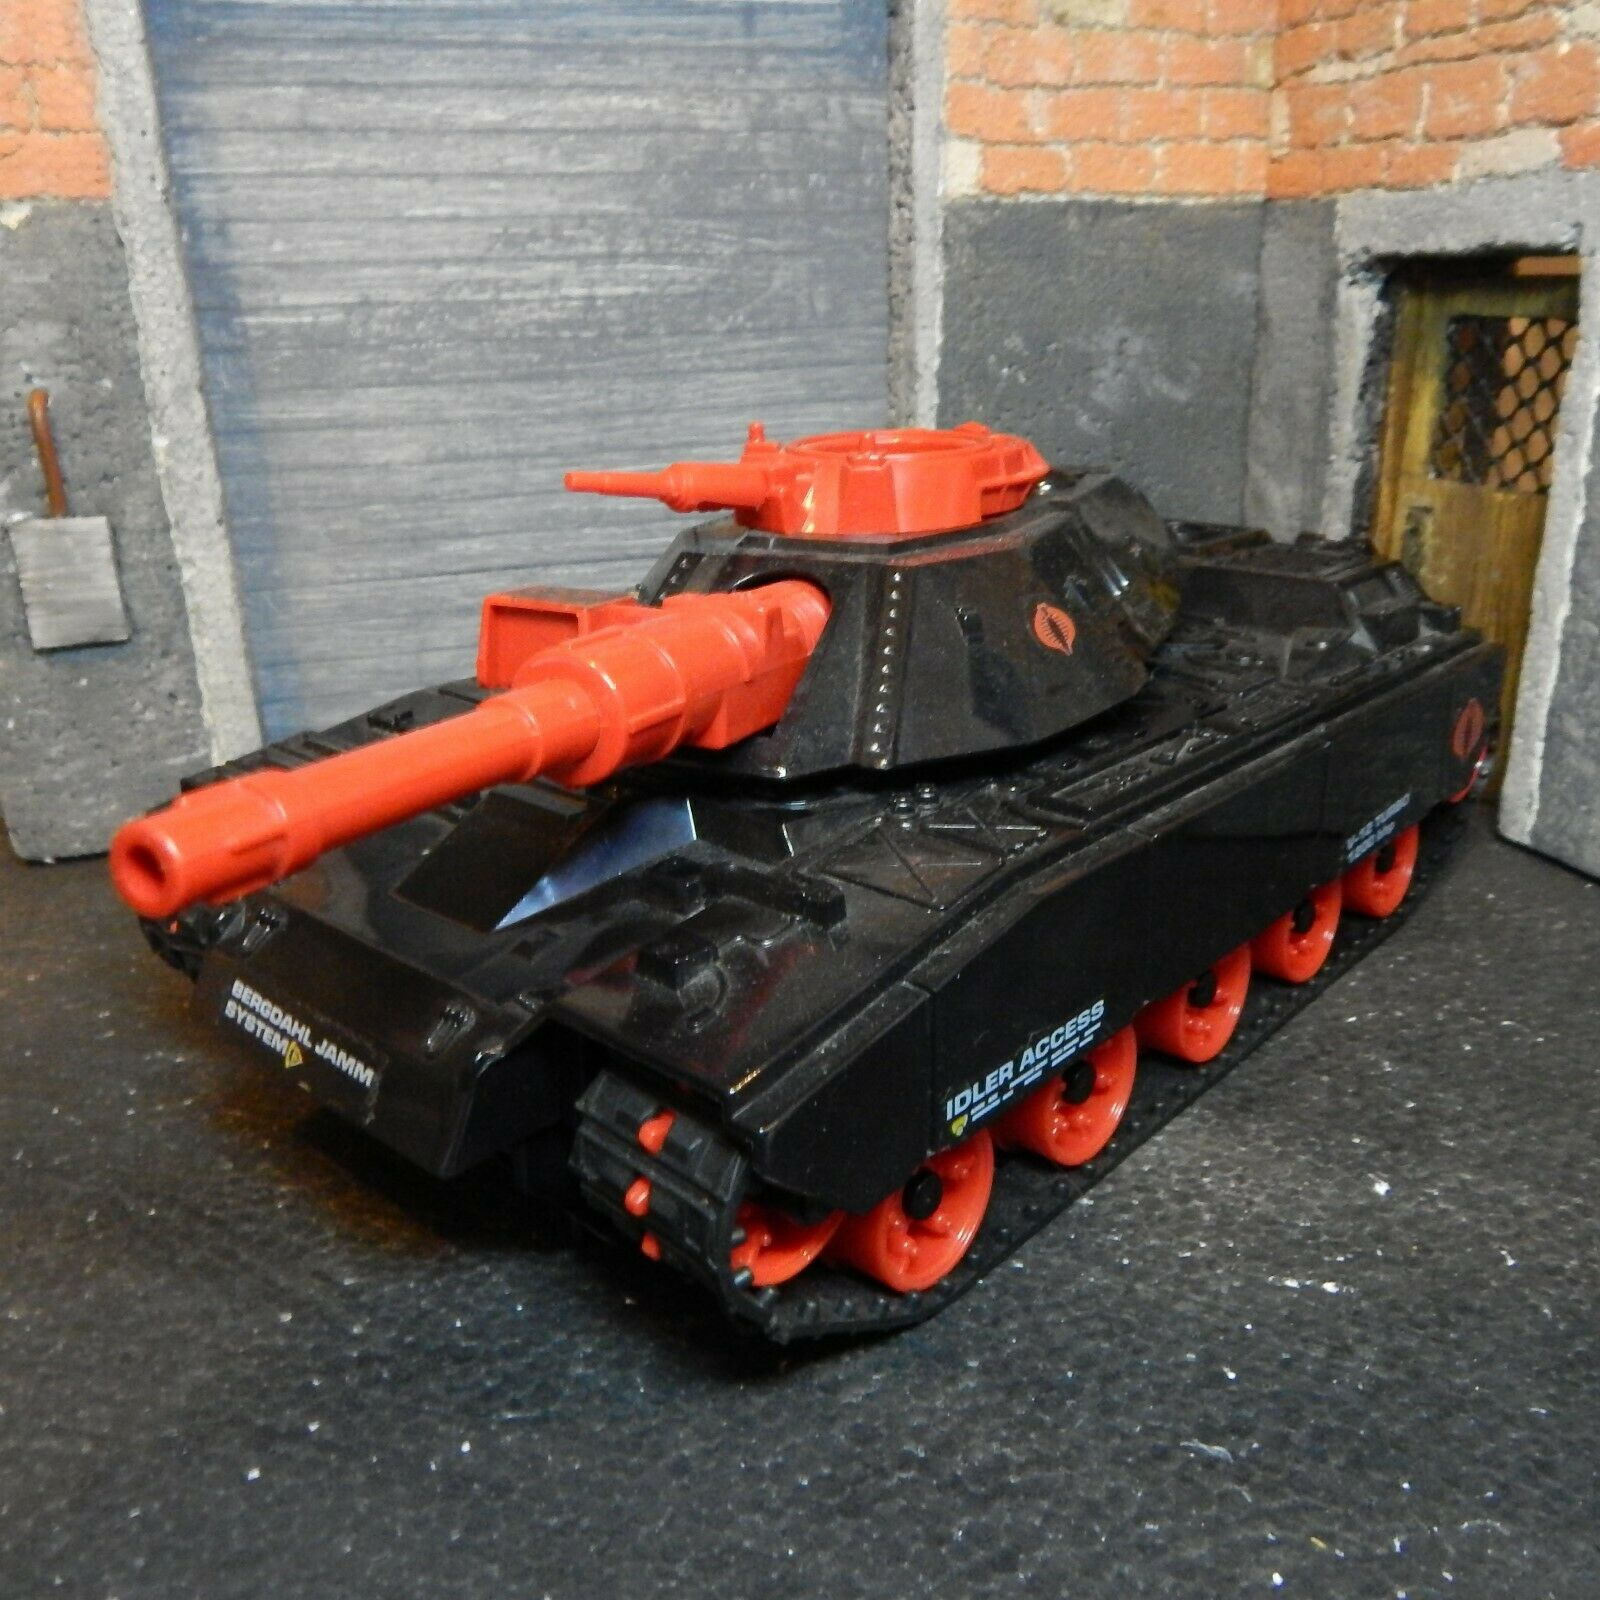 GI JOE  1985 SEARS CRIMSON CAT TANK  100% COMPLETE & ORIGINAL